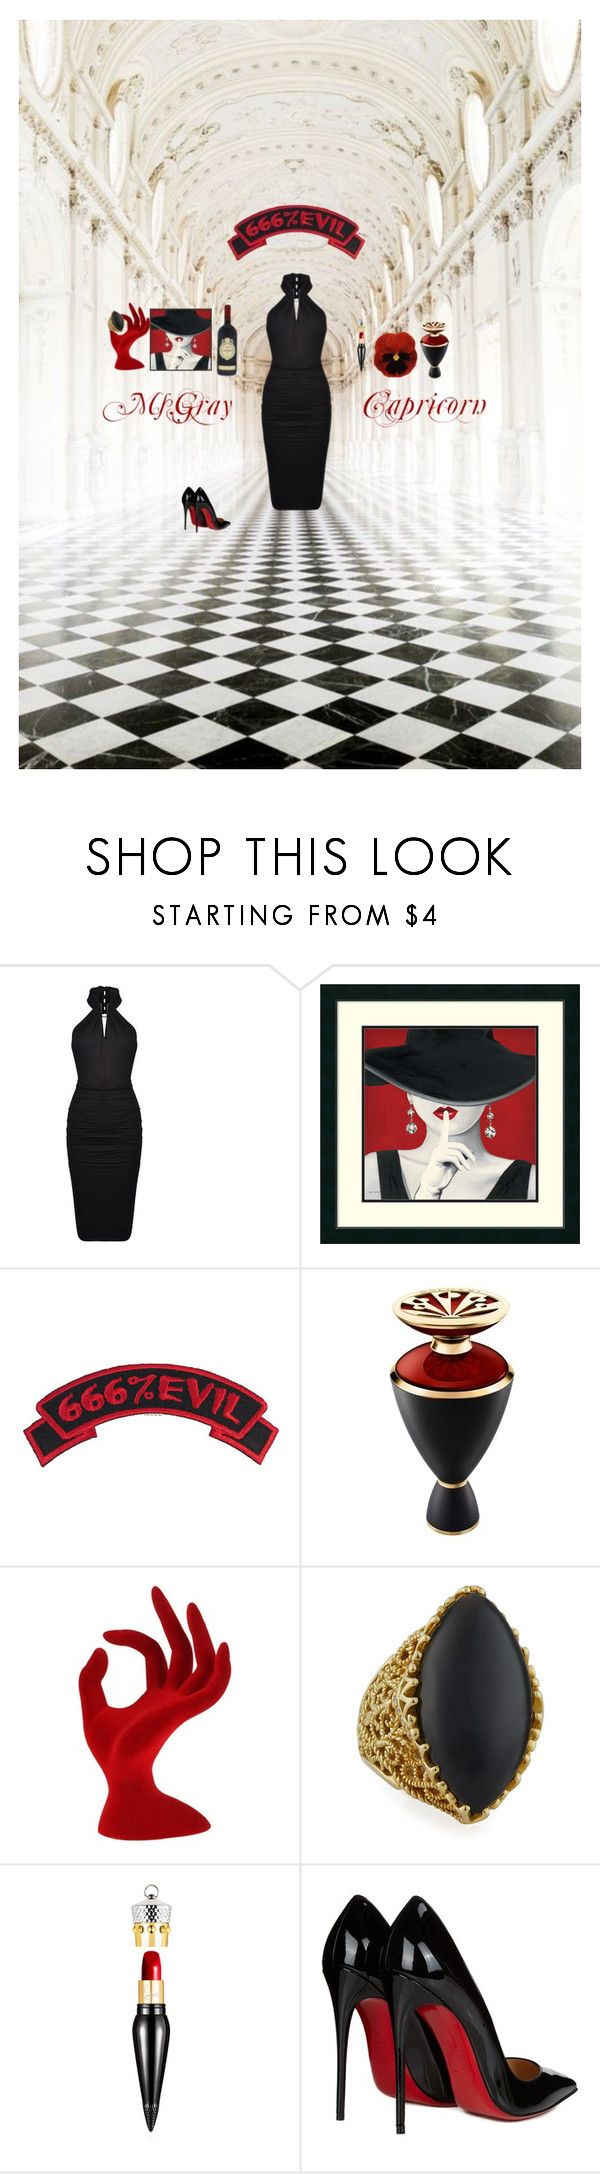 """capricorn"" by fmsgray ❤ liked on Polyvore featuring Oxford, Plein Sud, Bulgari, Cynthia Bach and Christian Louboutin"